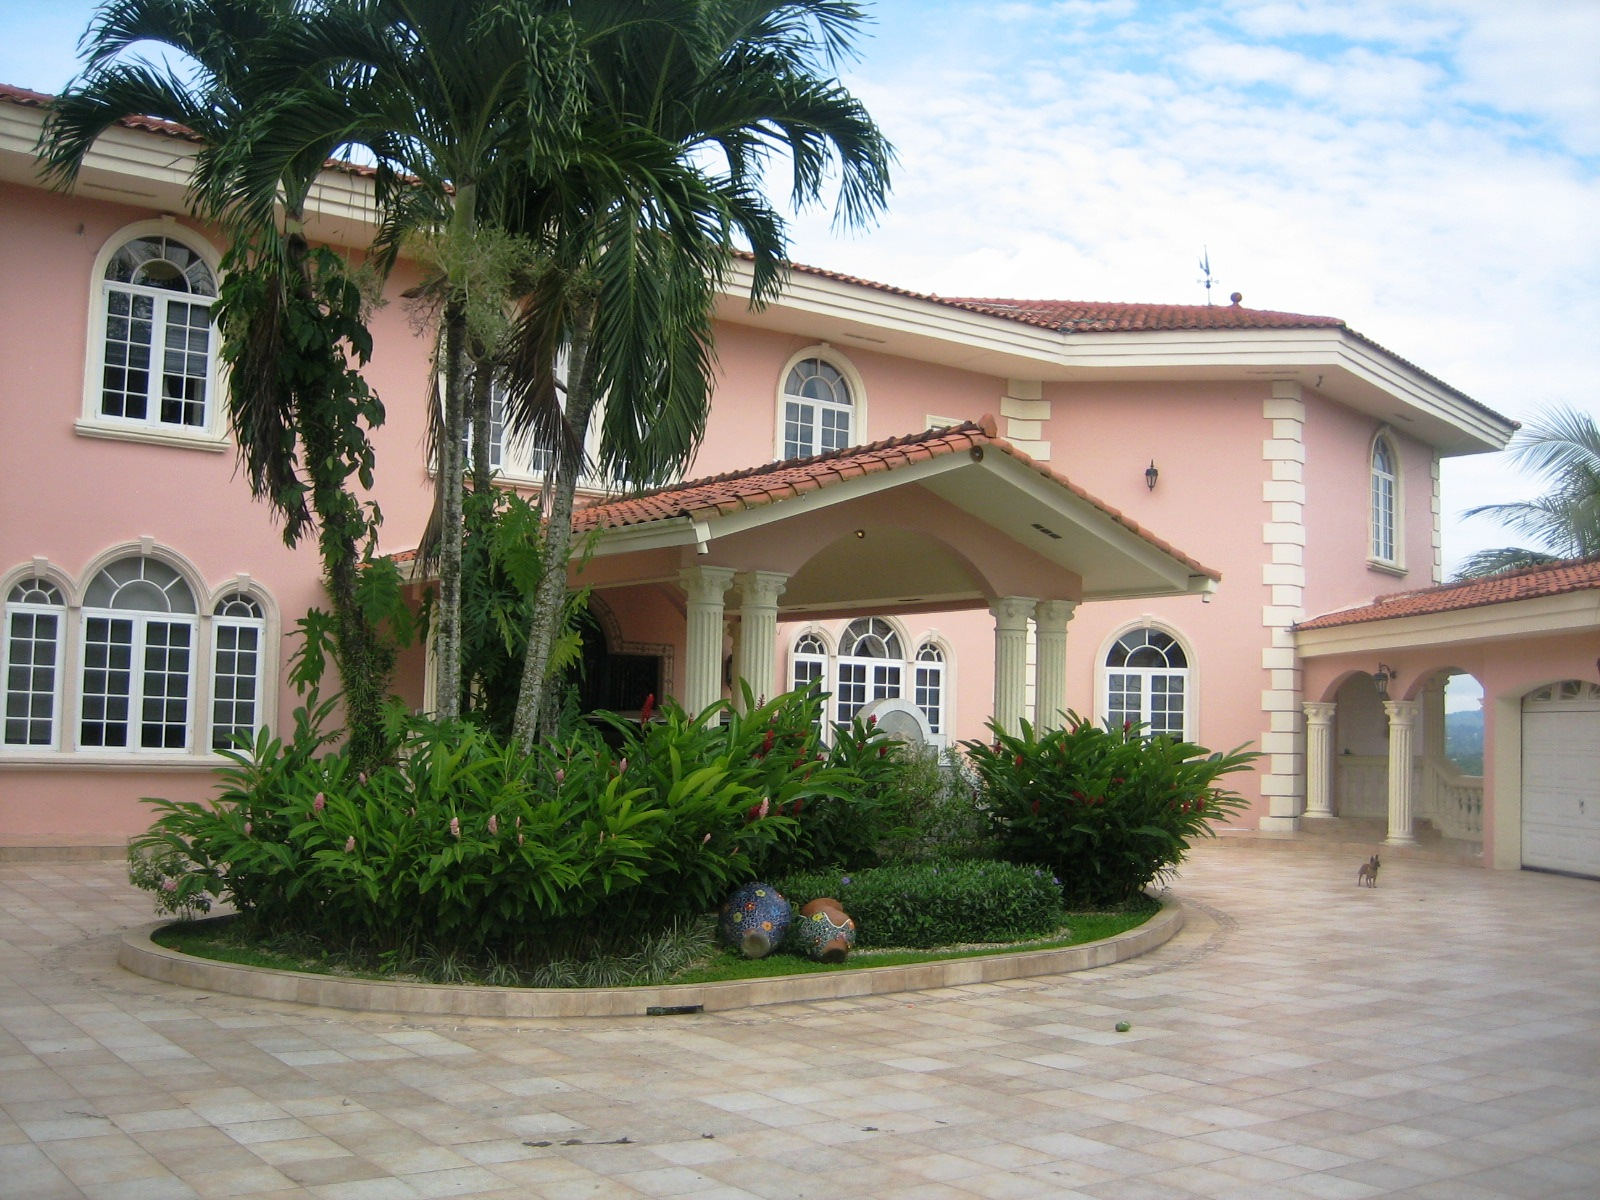 Five Bedroom House With A Swimming Pool For Sale In Panama City